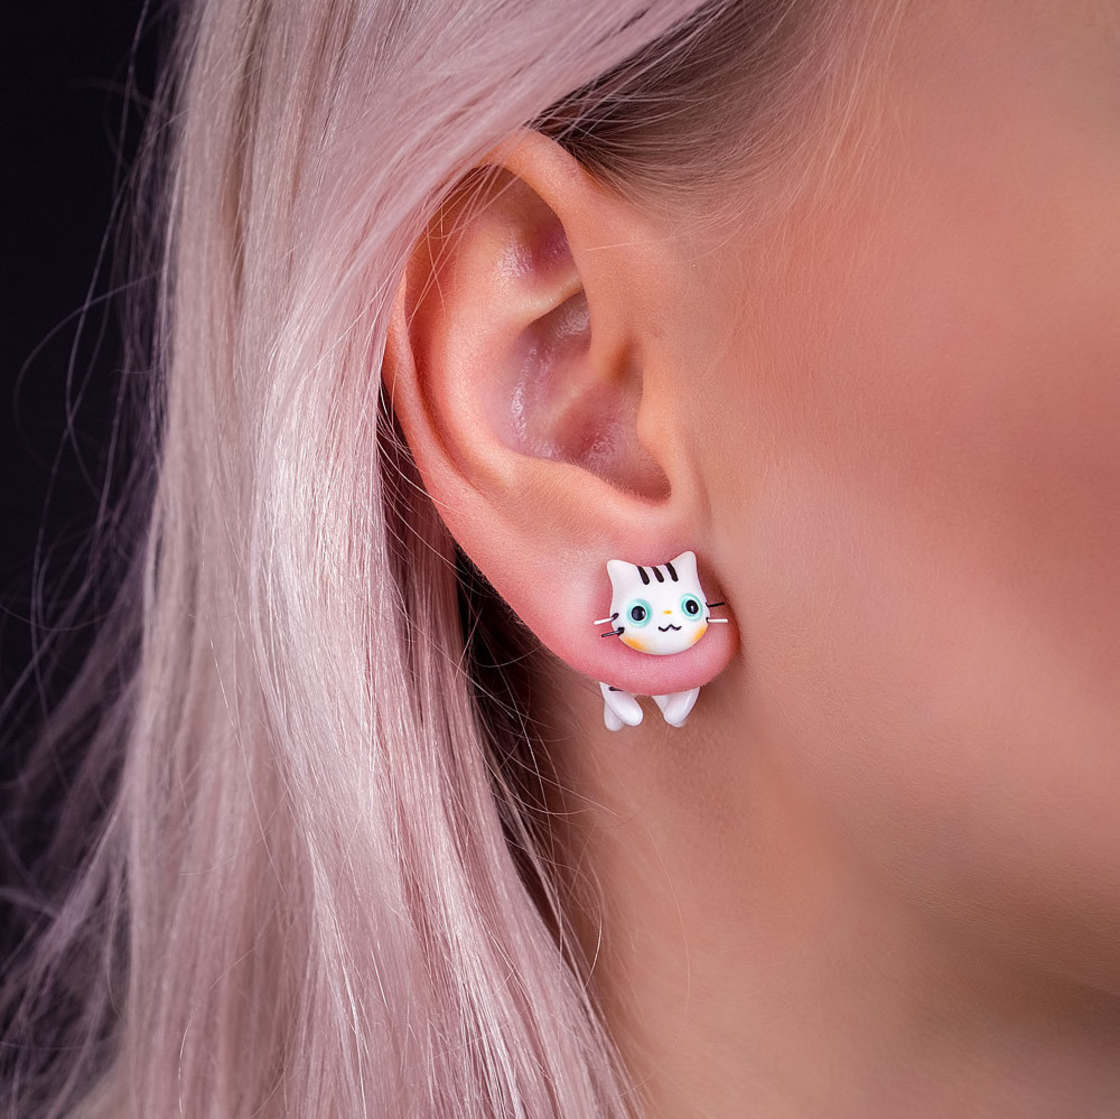 Cats and Pop Culture - The lovely earrings by CatMade